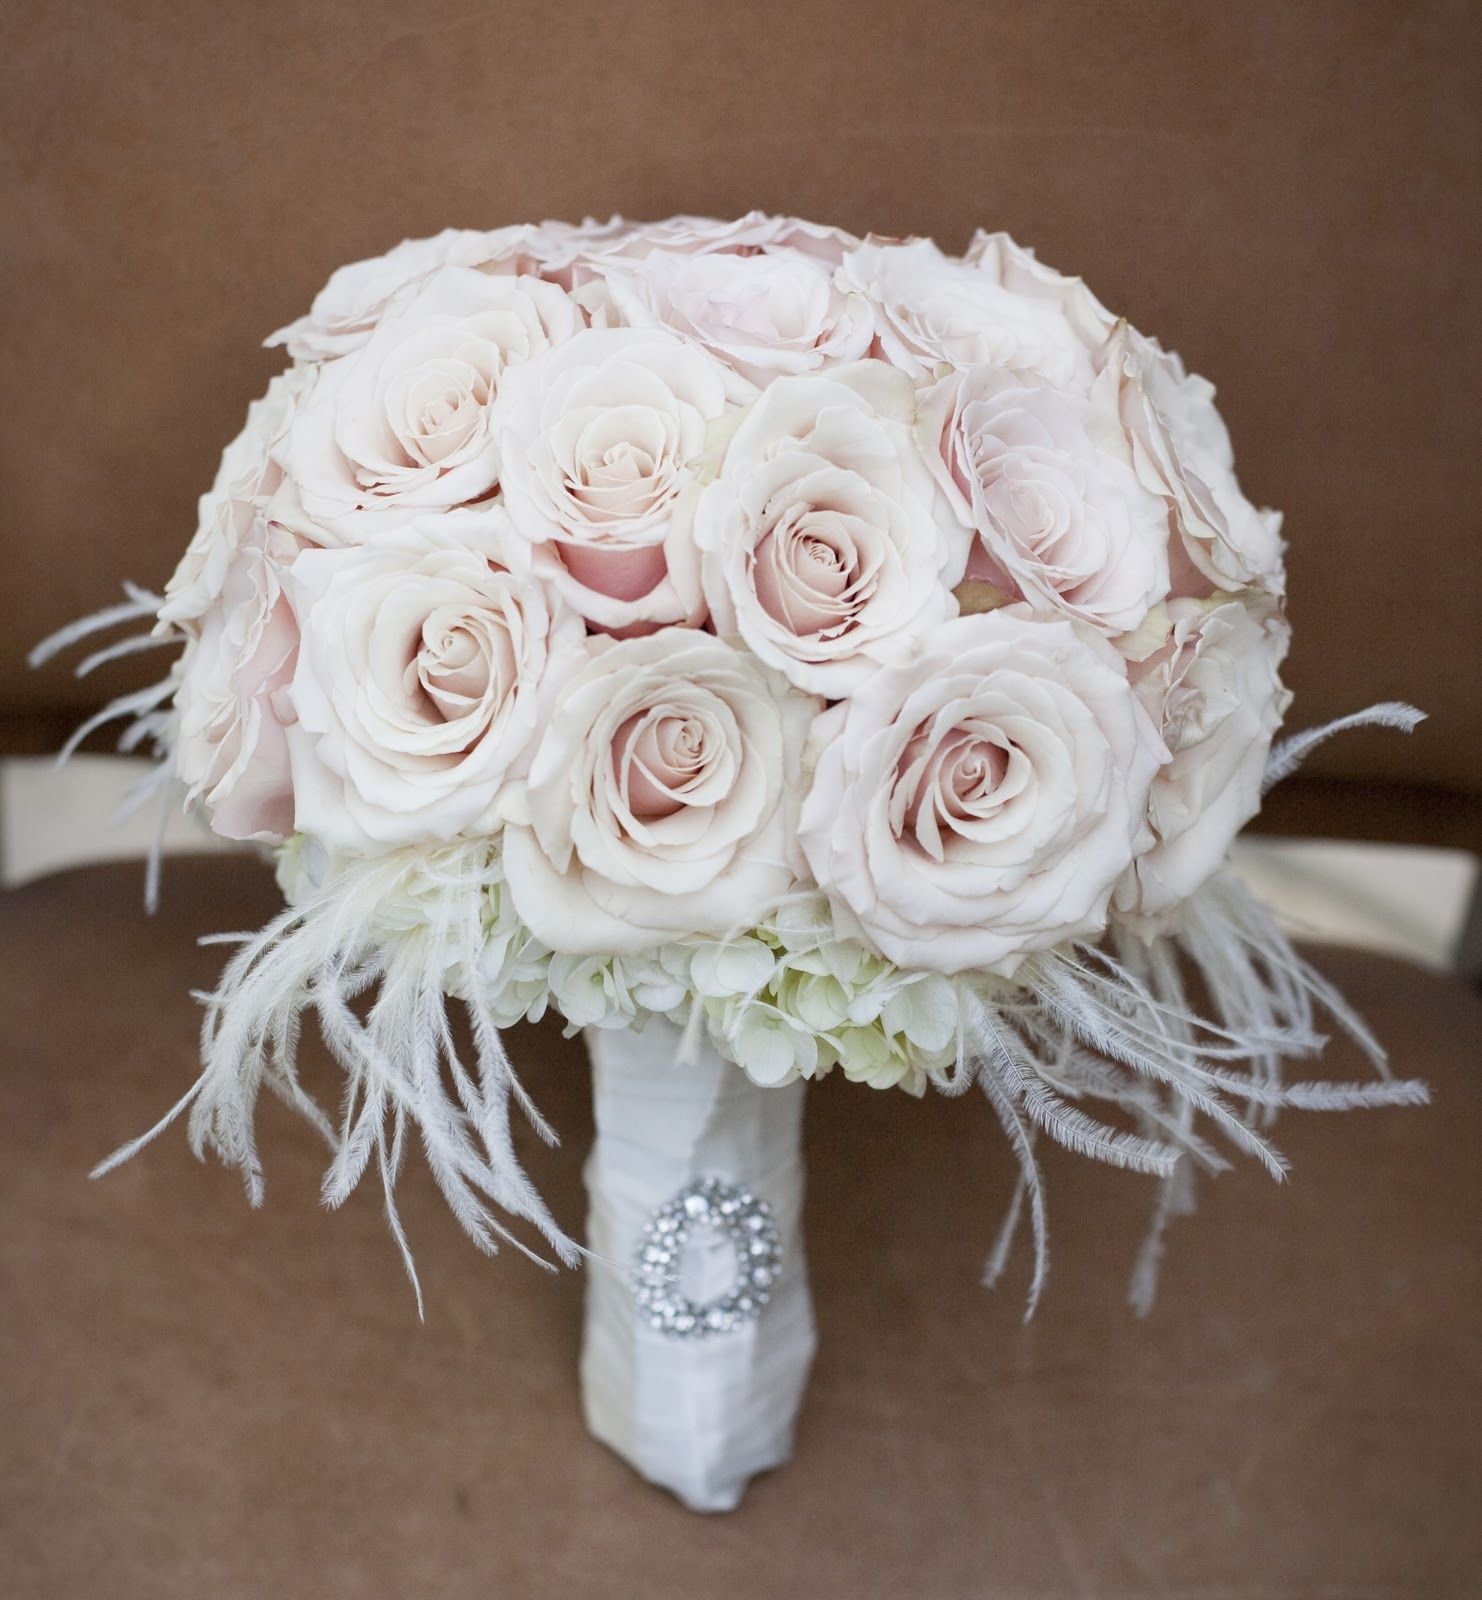 Wedding arrangements with feathers - Google Search